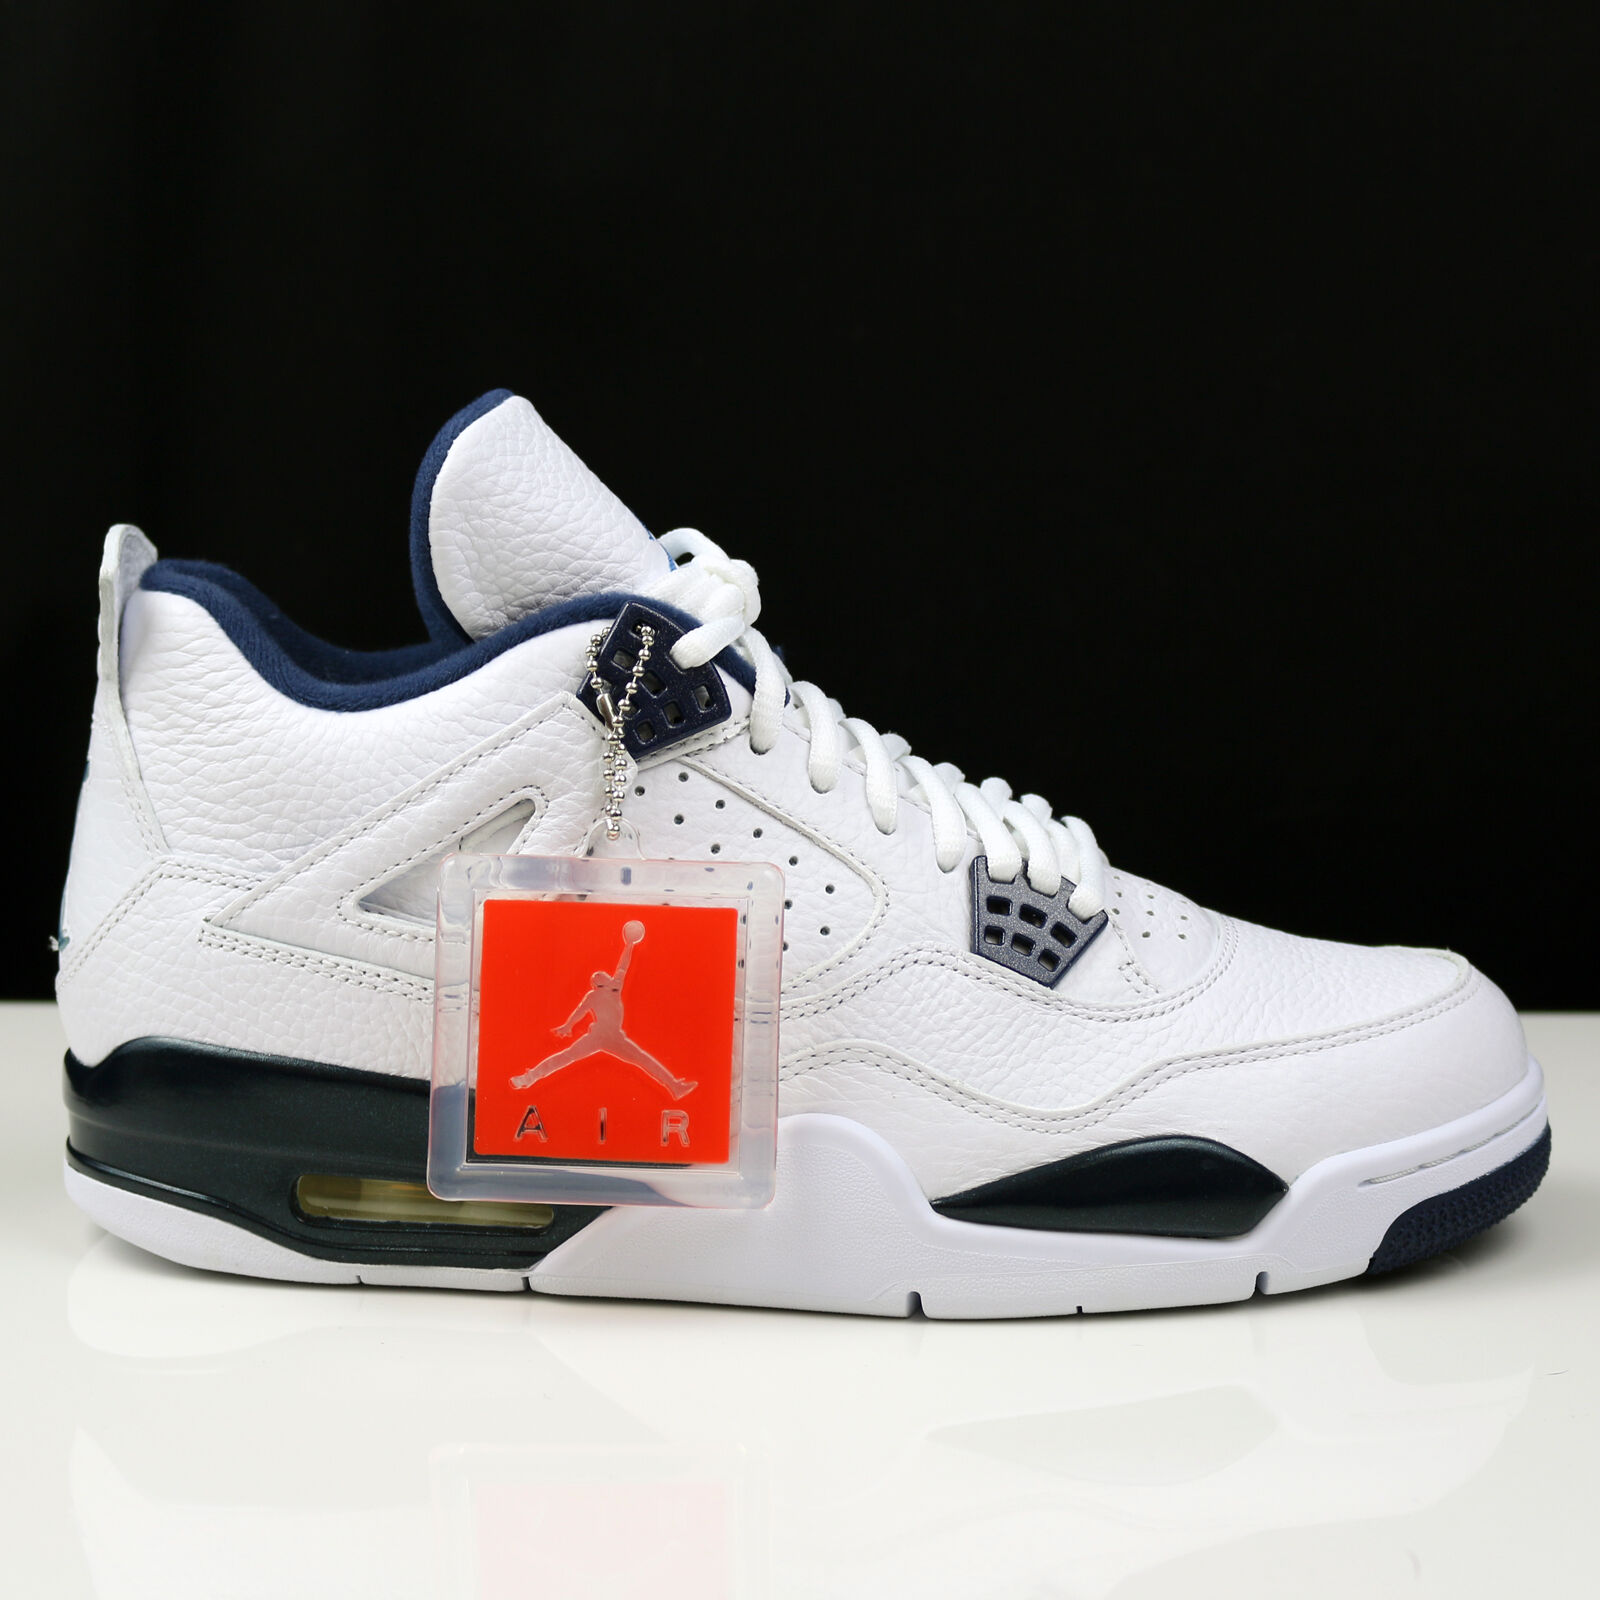 Nike Air Jordan 4 IV Retro Legend Bleu Columbia bred DS New 314254-107 sz US10